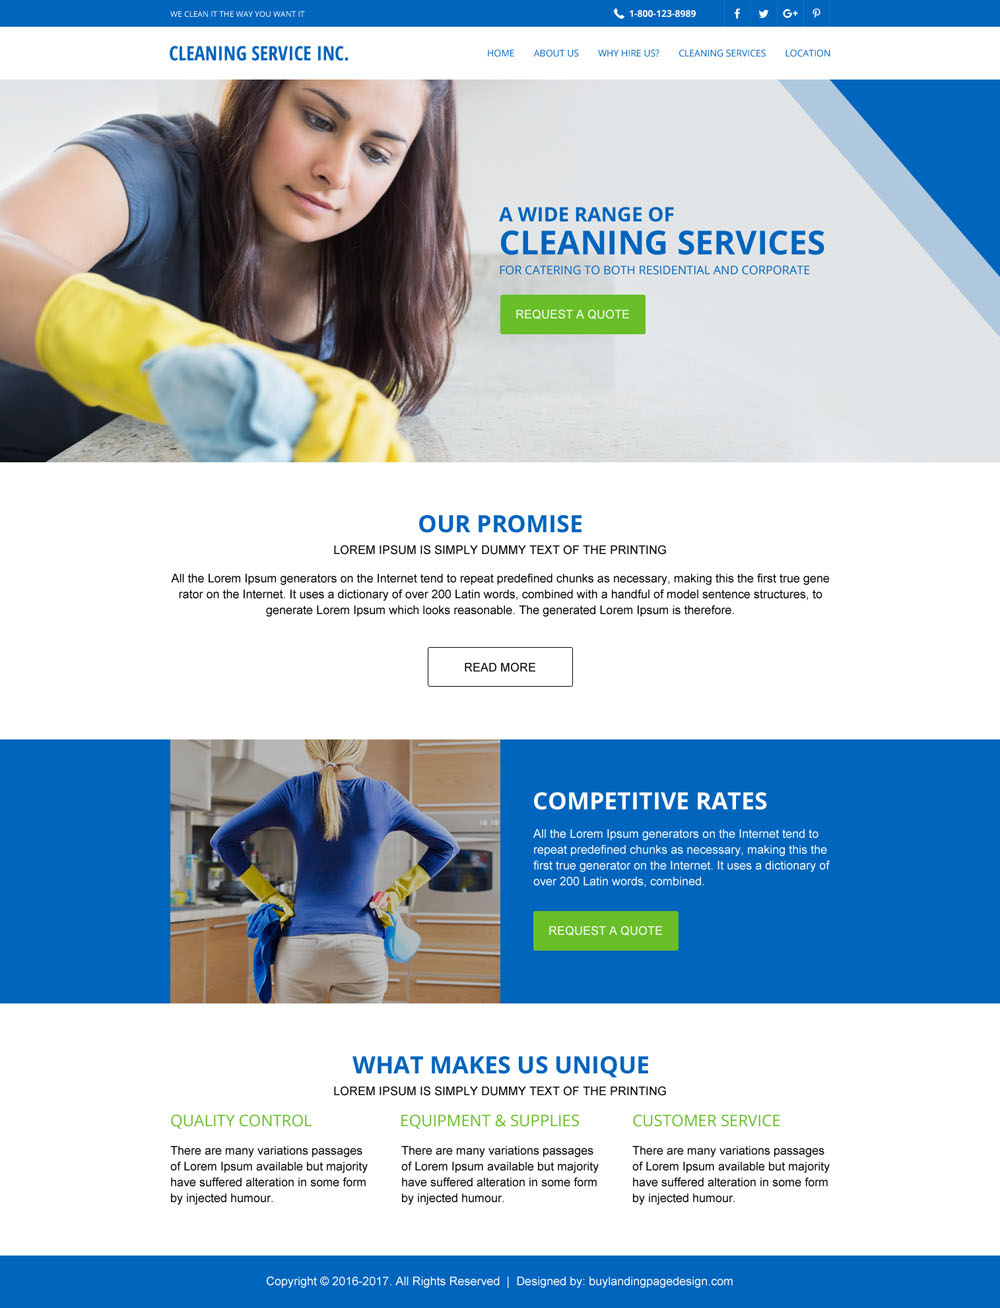 cleaning-service-responsive-website-template-to-create-your-beautiful-cleaning-service-website-001-index